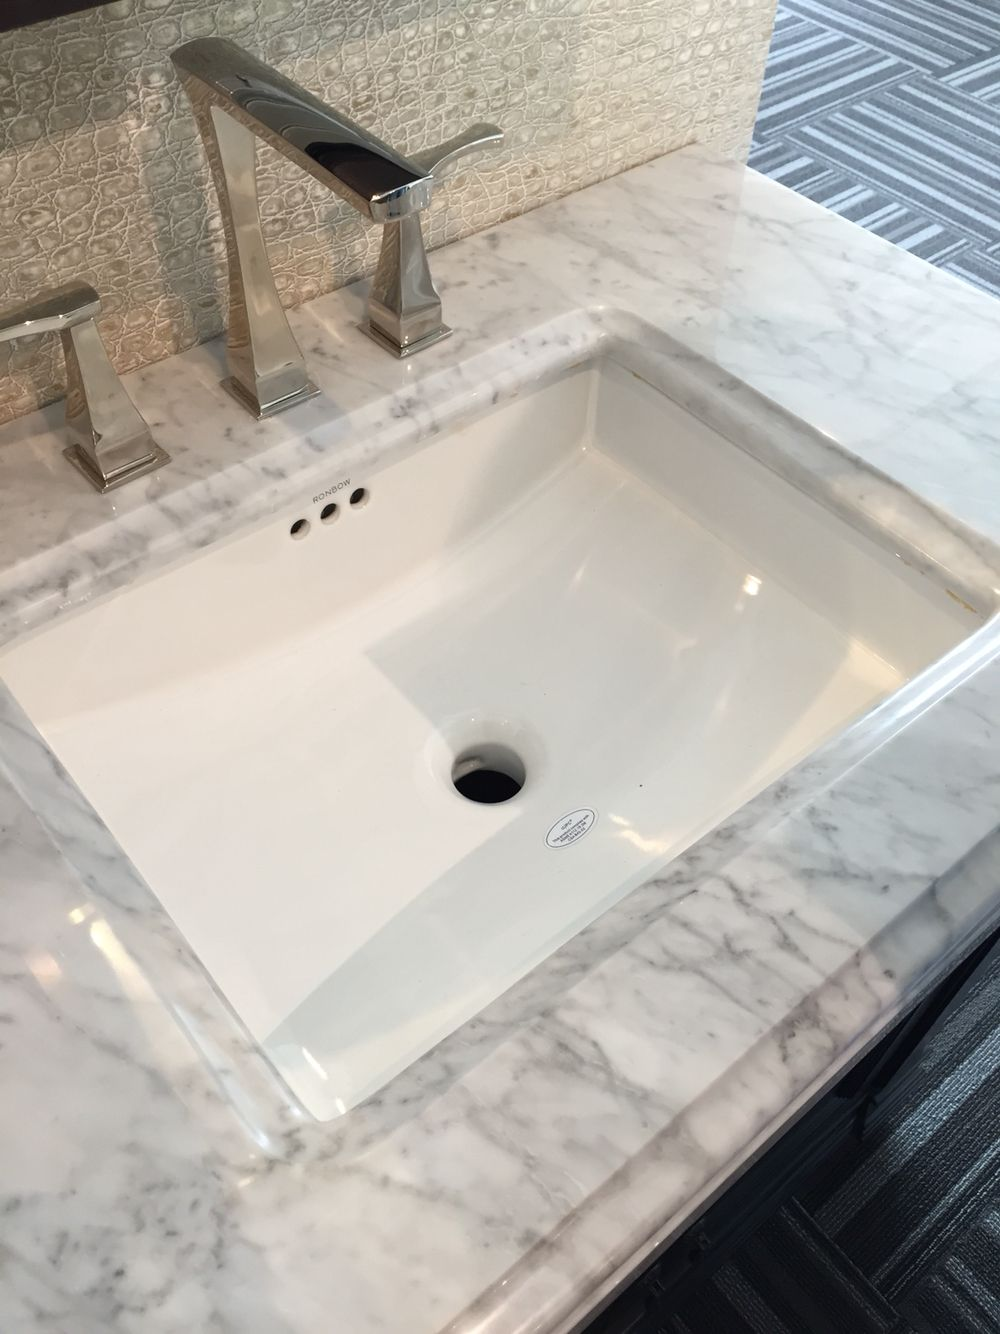 Ronbow 200520 rectangle undercounted ceramic sink (Westheimer Plumbing and Hardware) $248